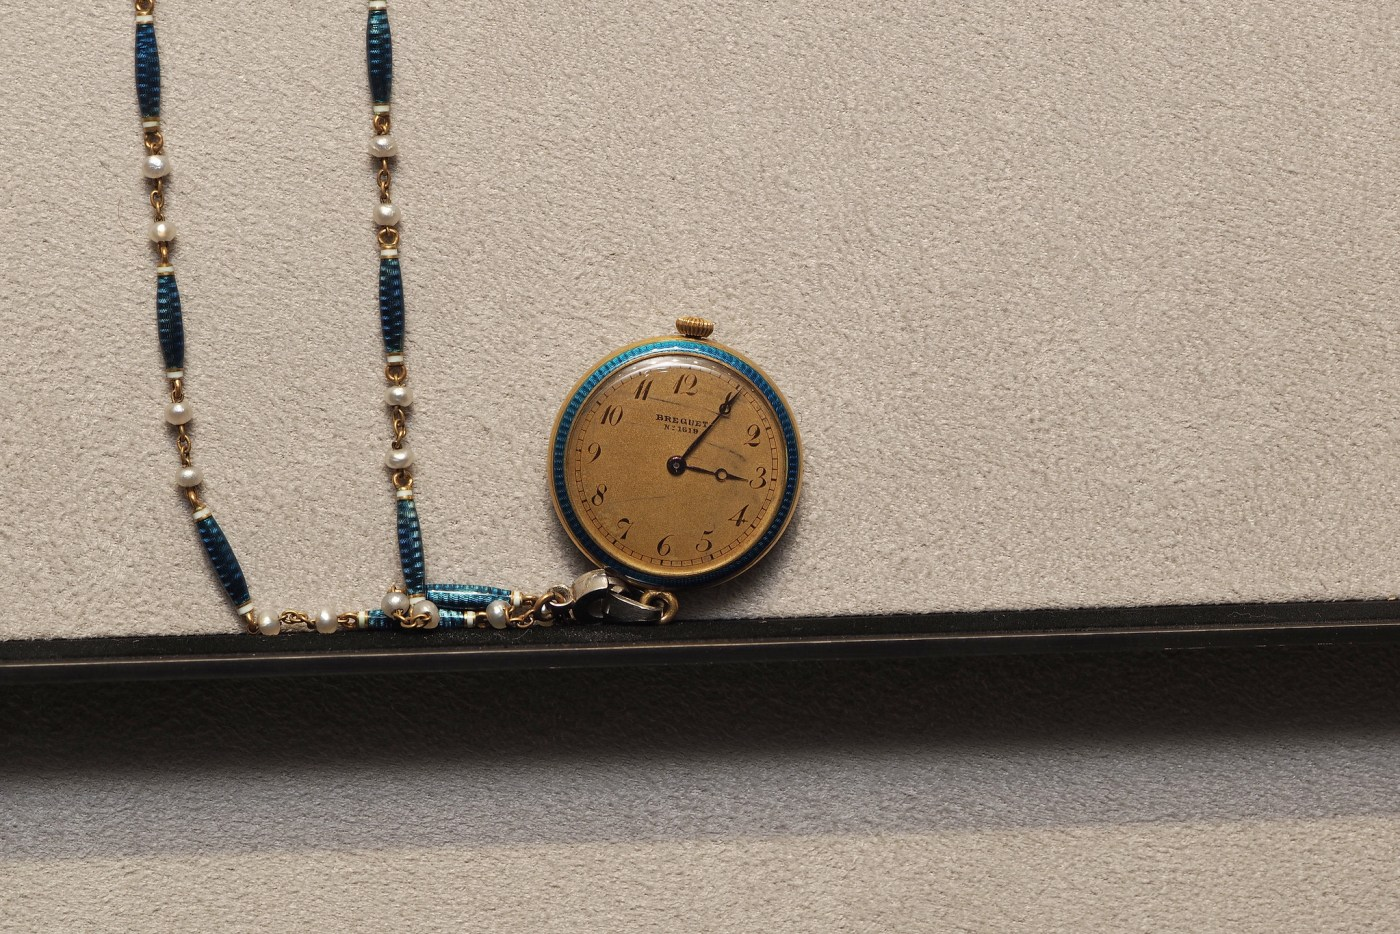 Breguet Pendant watch on display at the Breguet Museum of Paris